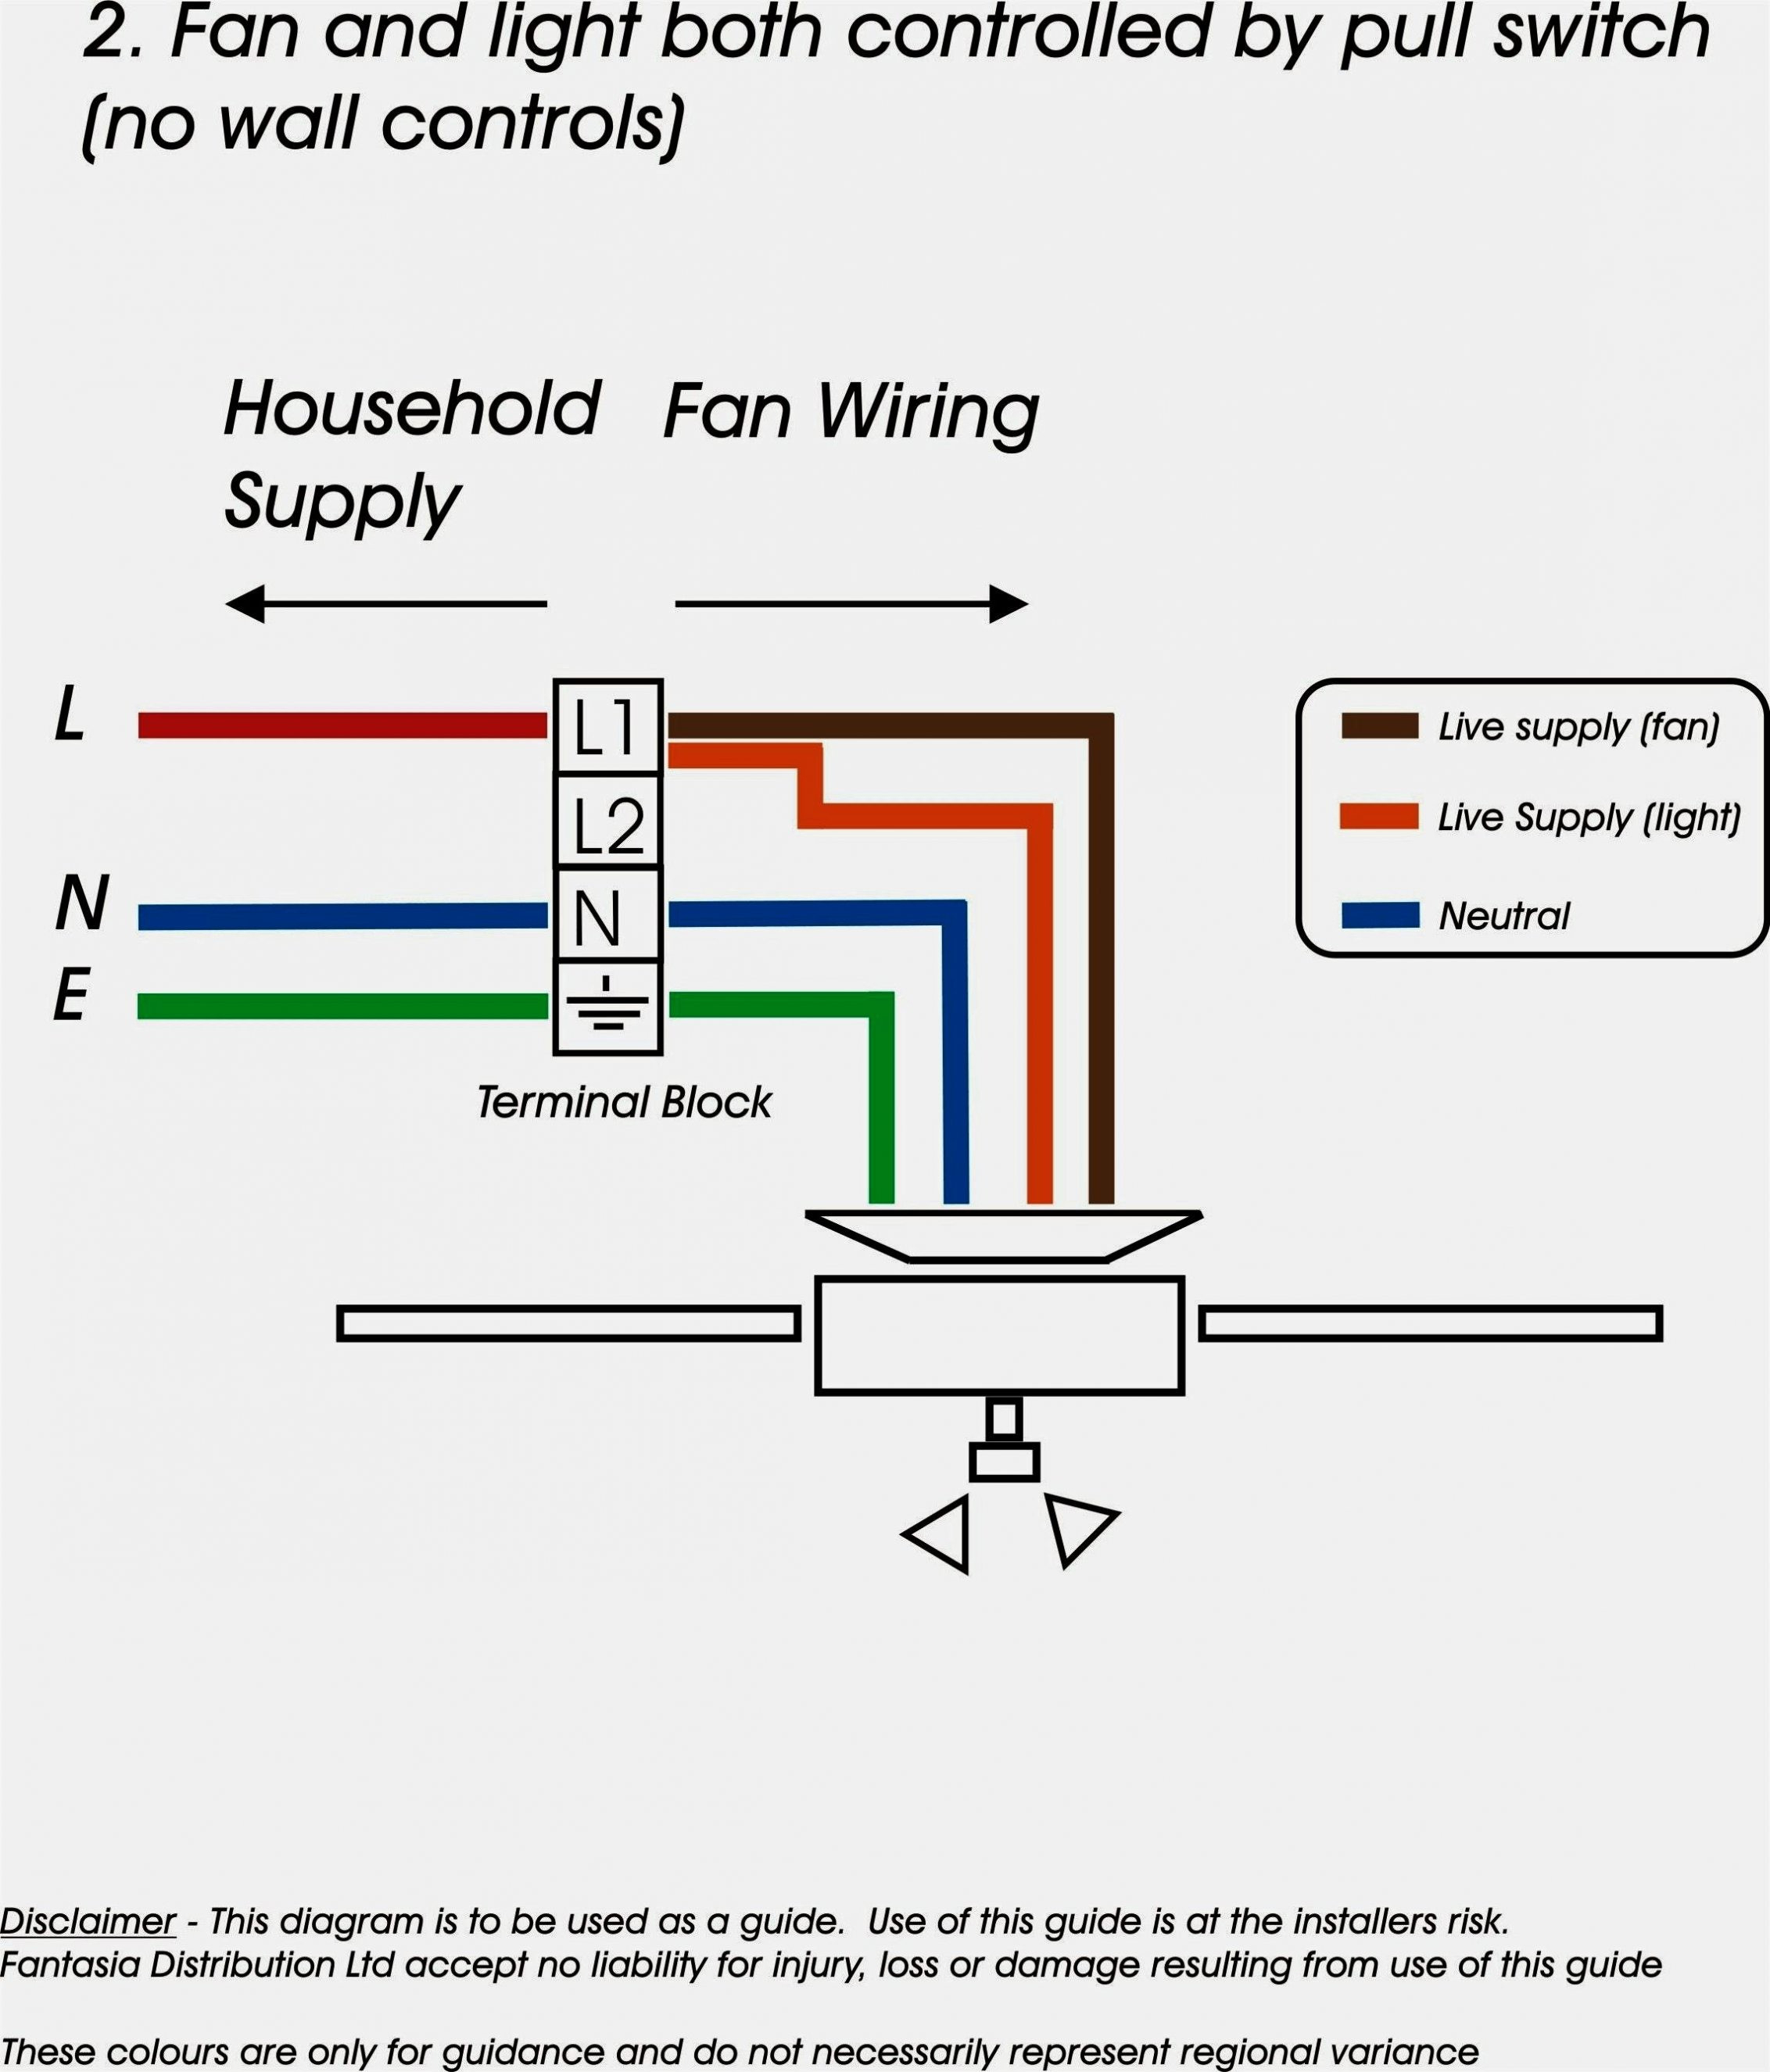 ceiling fan 3 way switch wiring diagram Download-hunter ceiling fan 3 way switch wiring diagram Collection Ceiling Fan Pull Chain Switch Wiring 14-j